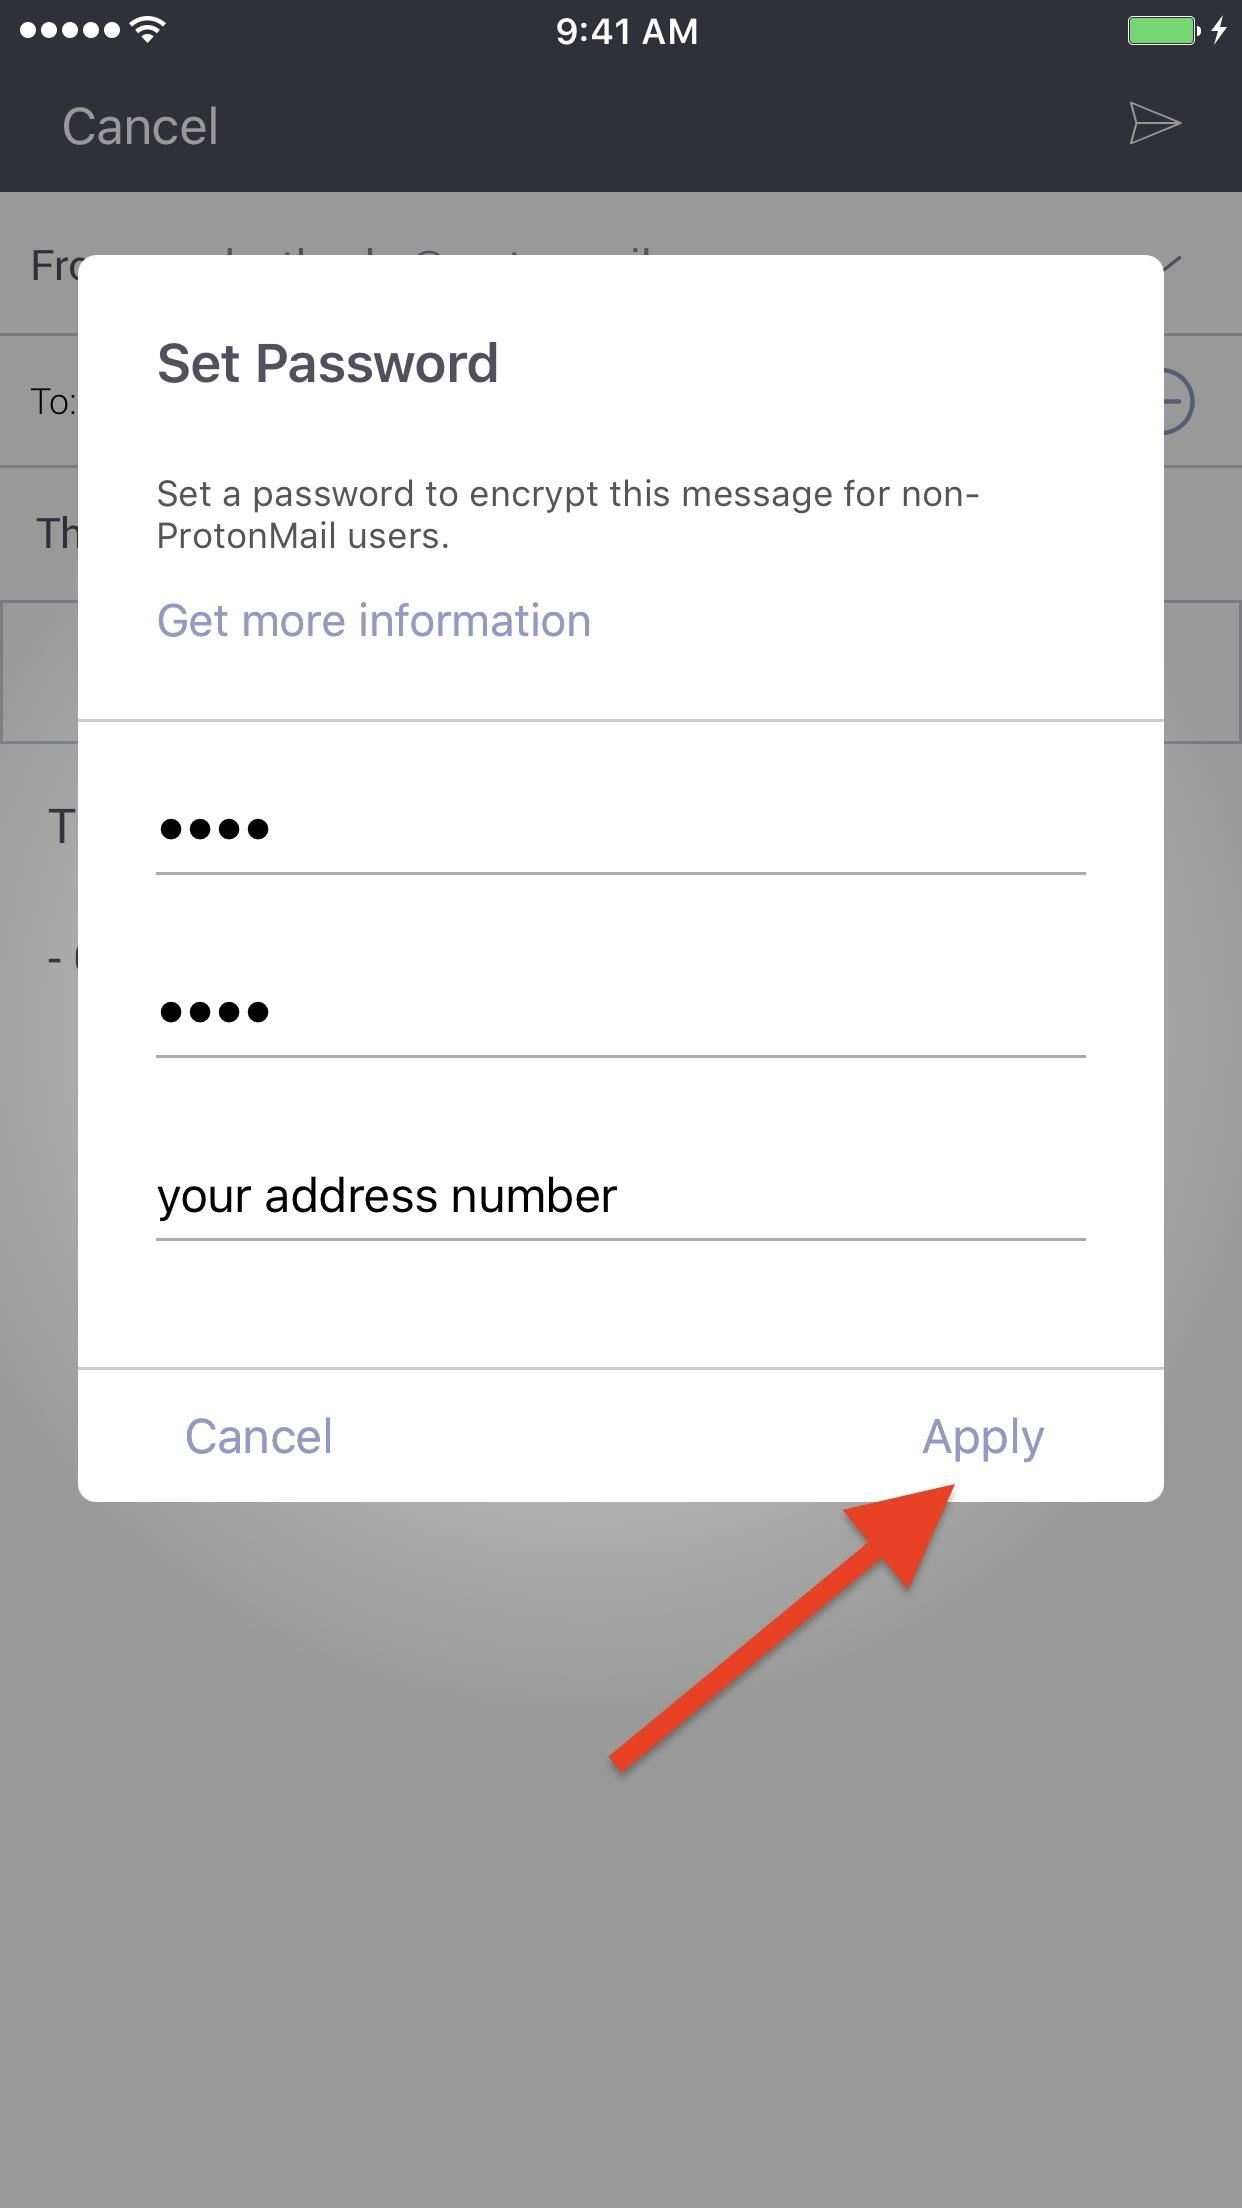 ProtonMail 101: How to Send Self-Destructing Emails